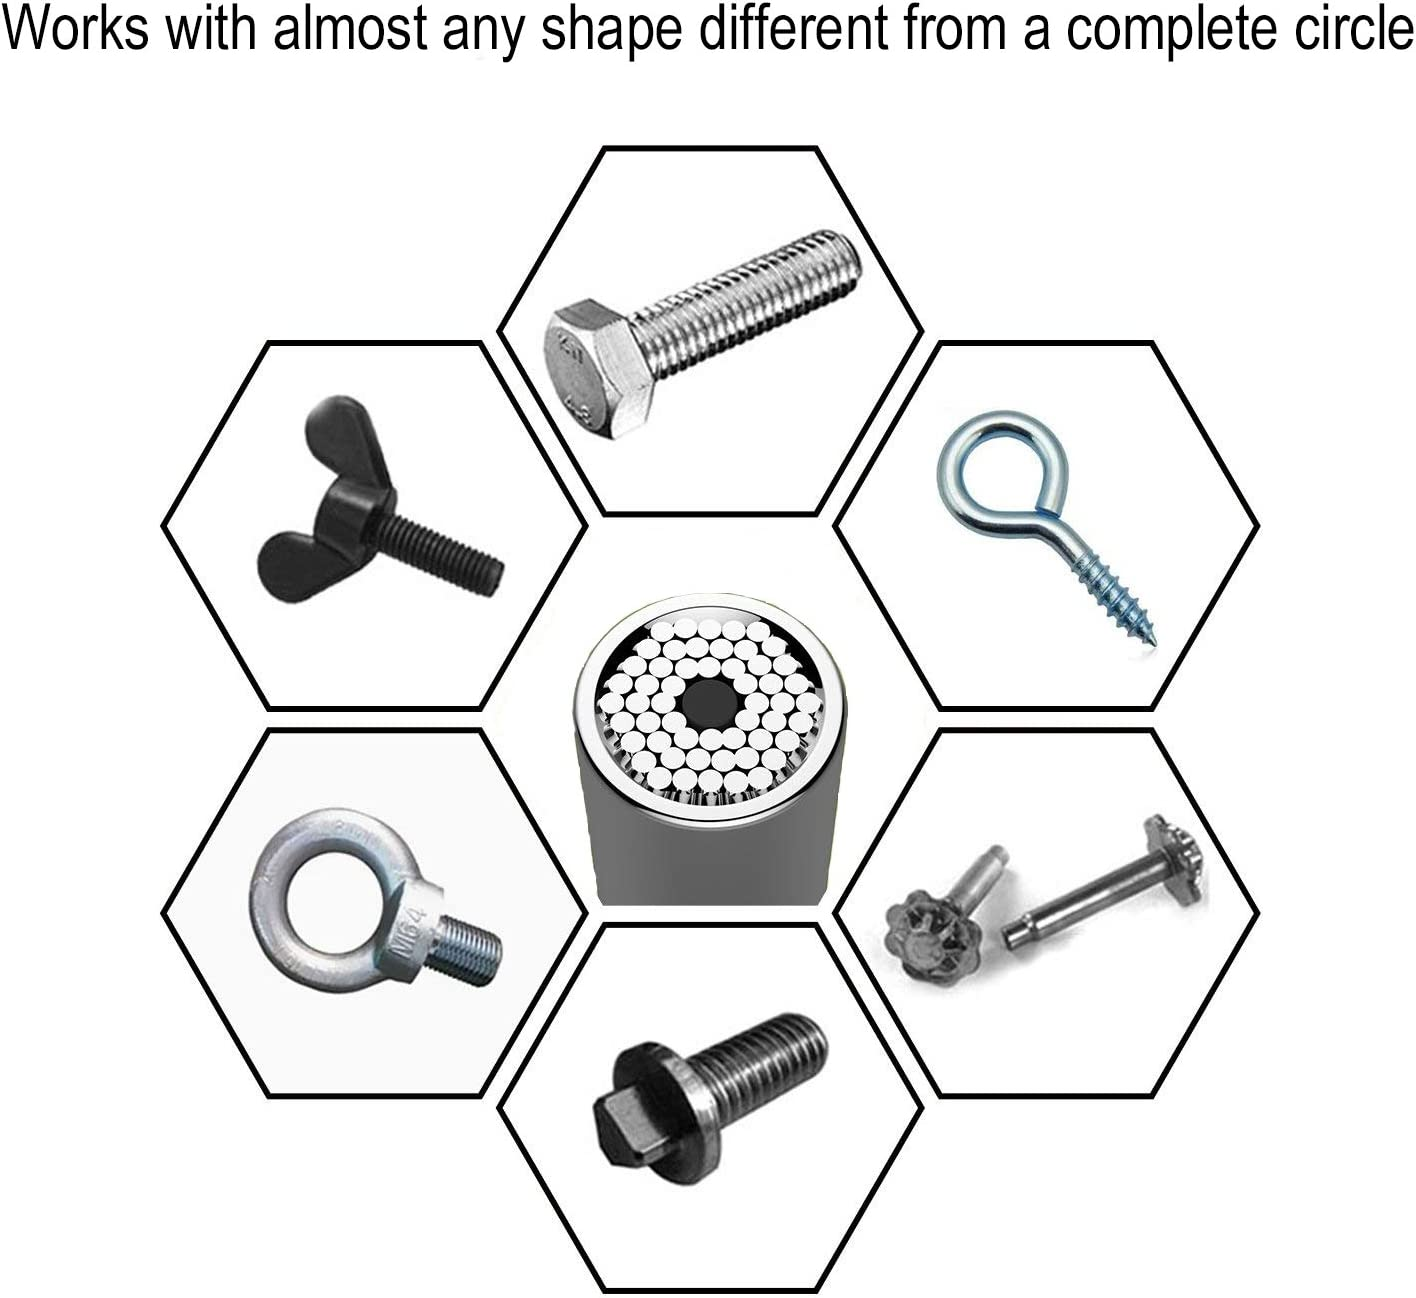 3Pcs Xiangyu Universal Socket Multi Function Socket Ratcheting Wrench Metric Tools 1//4 inch-3//4 inch 7mm-19mm 3//8 Drive Quick Release Ratchet Wrench with Power Drill Adapter